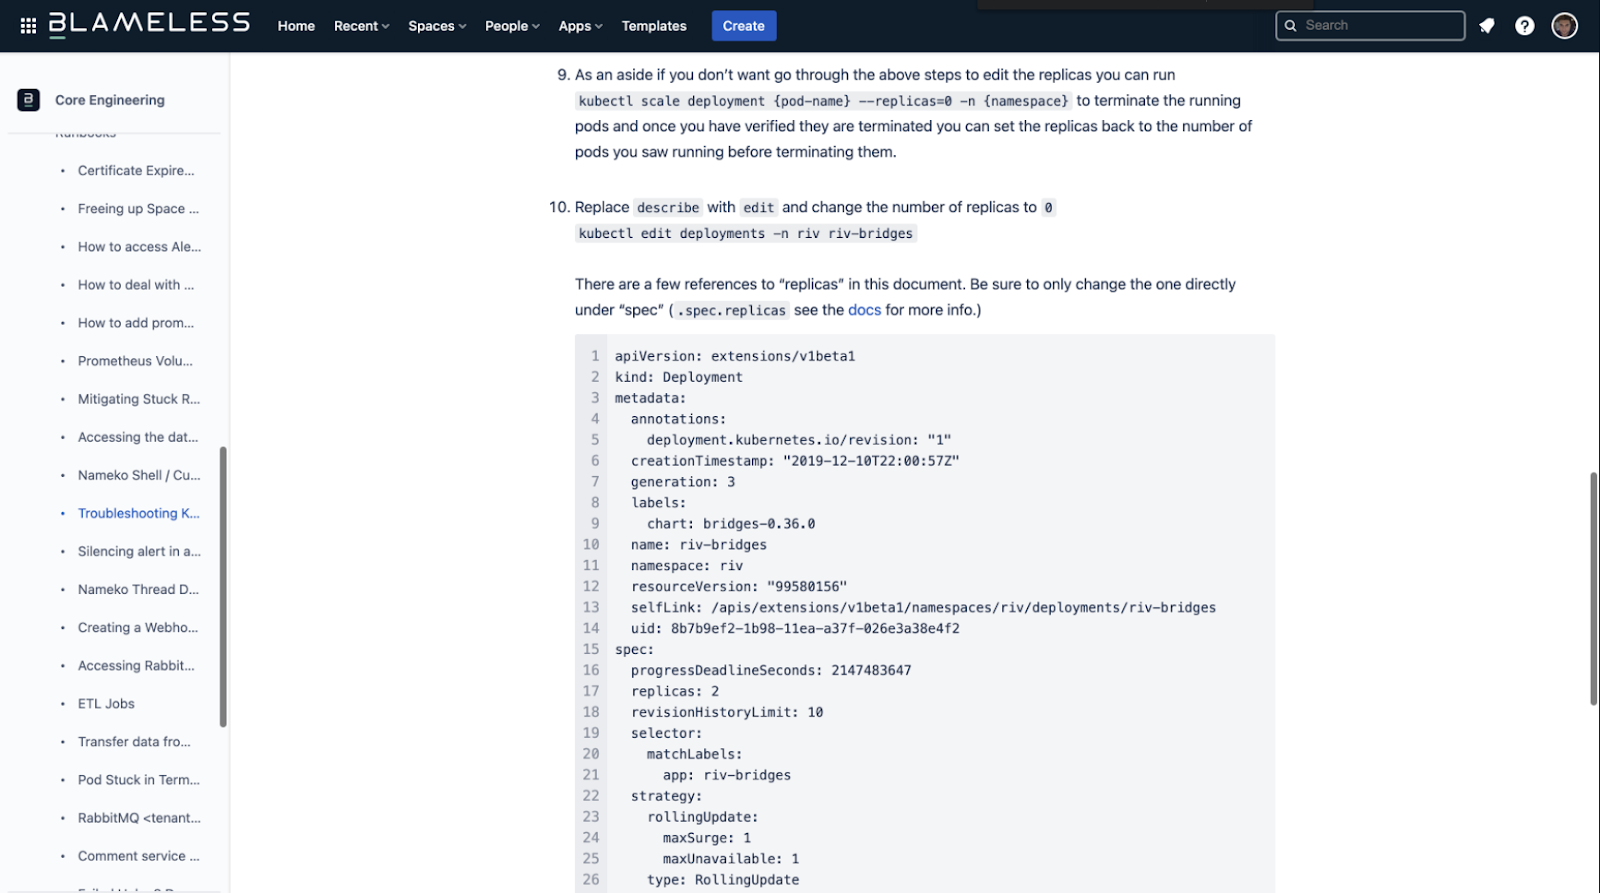 Image of runbook stored in Confluence